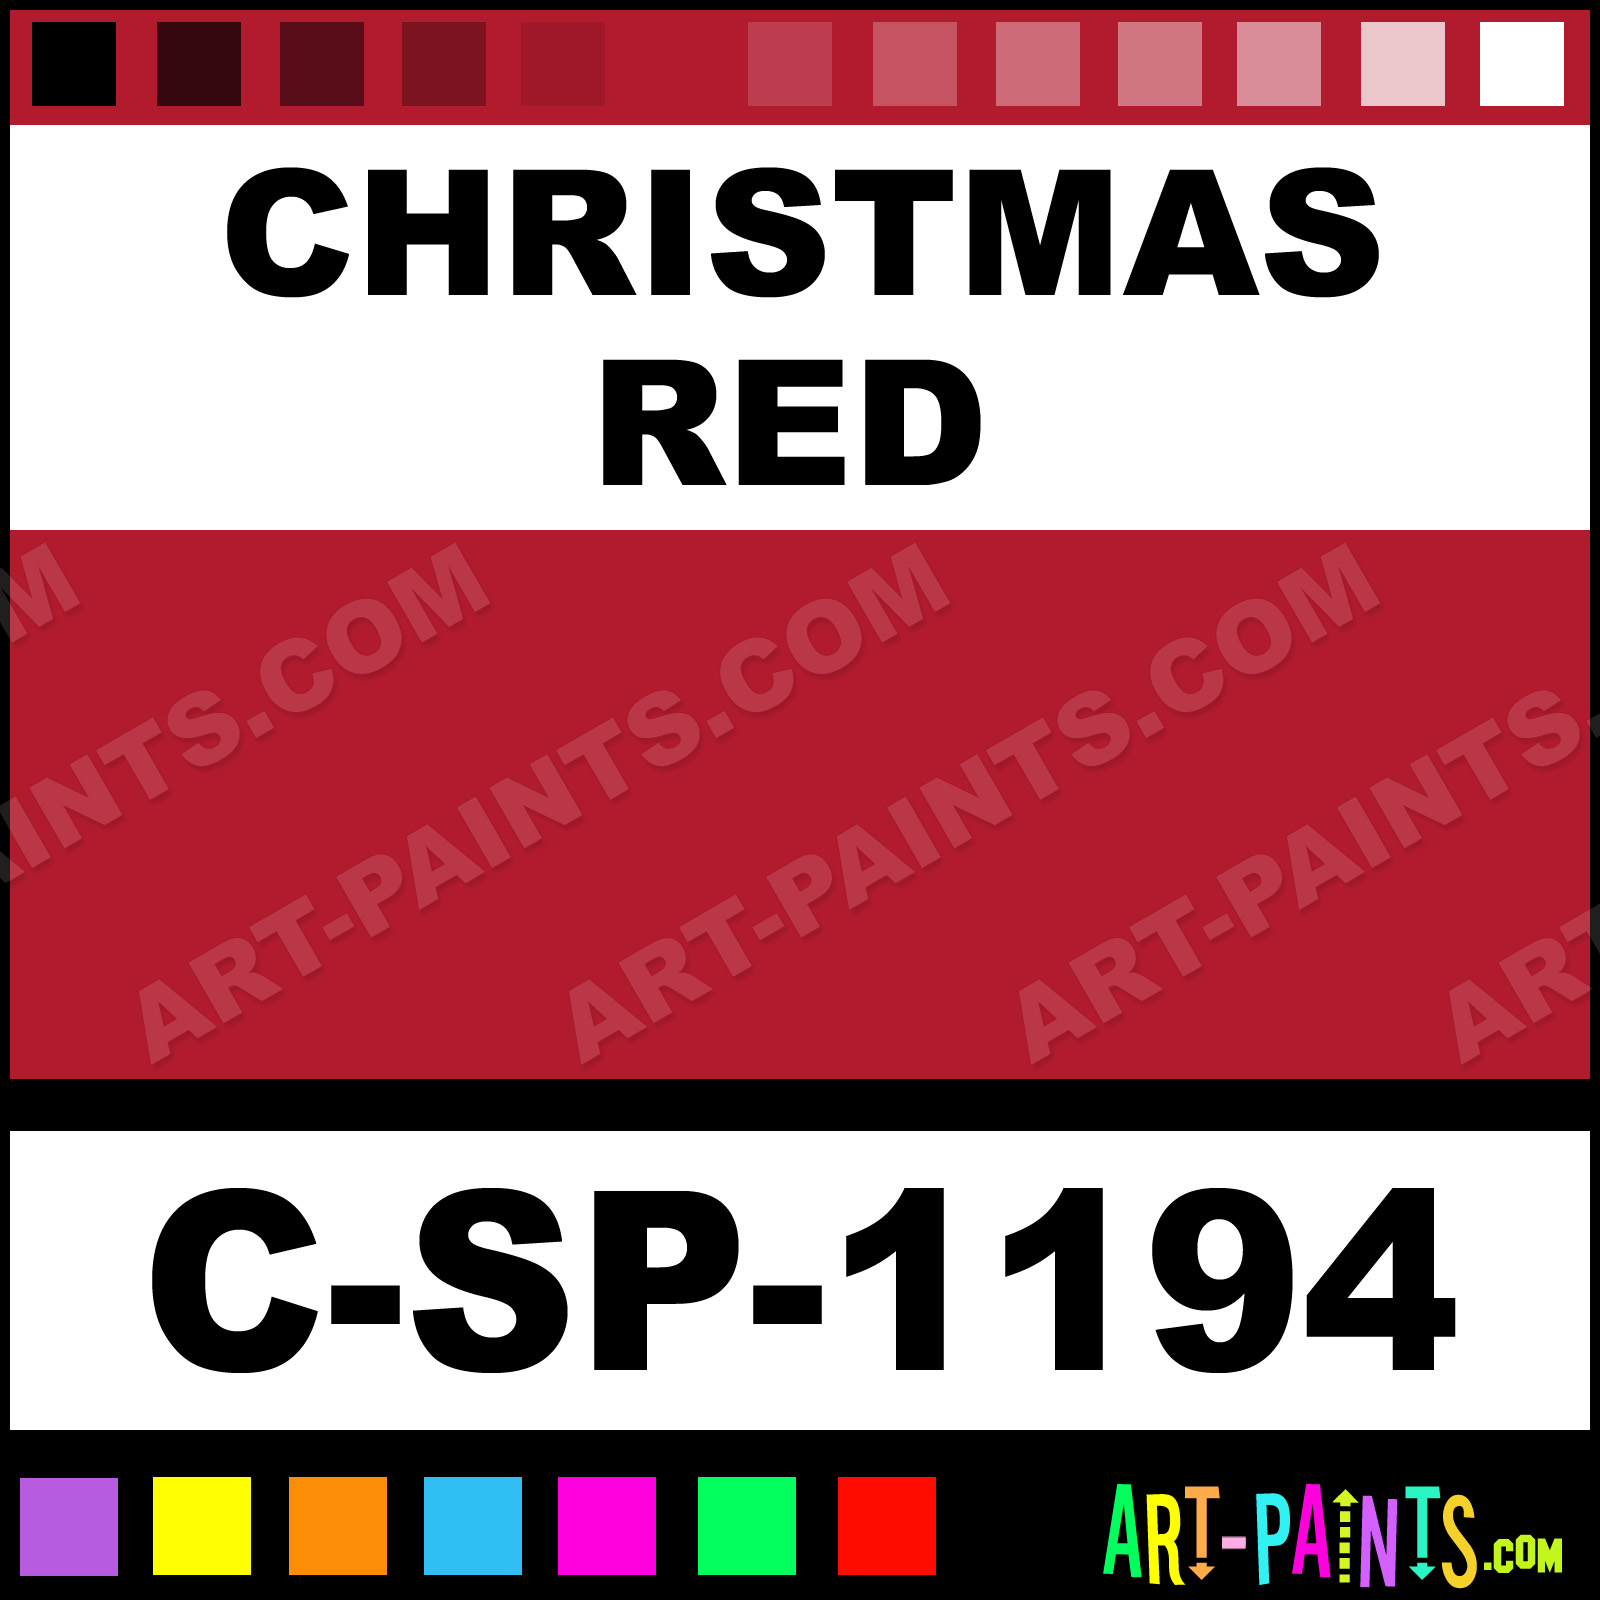 cmyk for christmas red